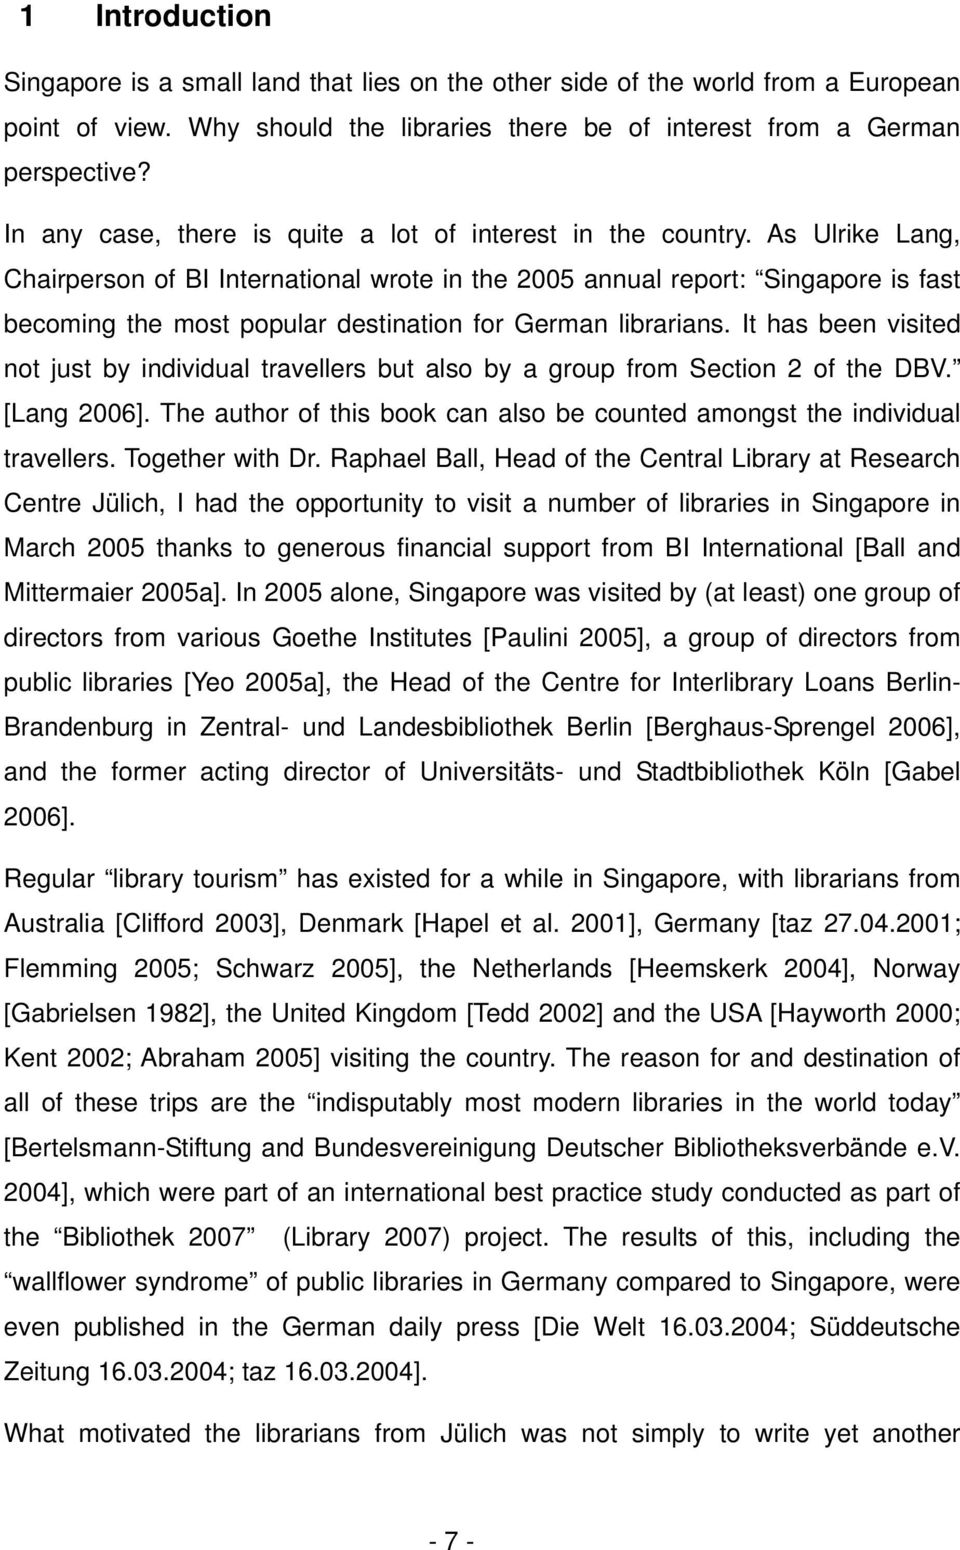 As Ulrike Lang, Chairperson of BI International wrote in the 2005 annual report: Singapore is fast becoming the most popular destination for German librarians.